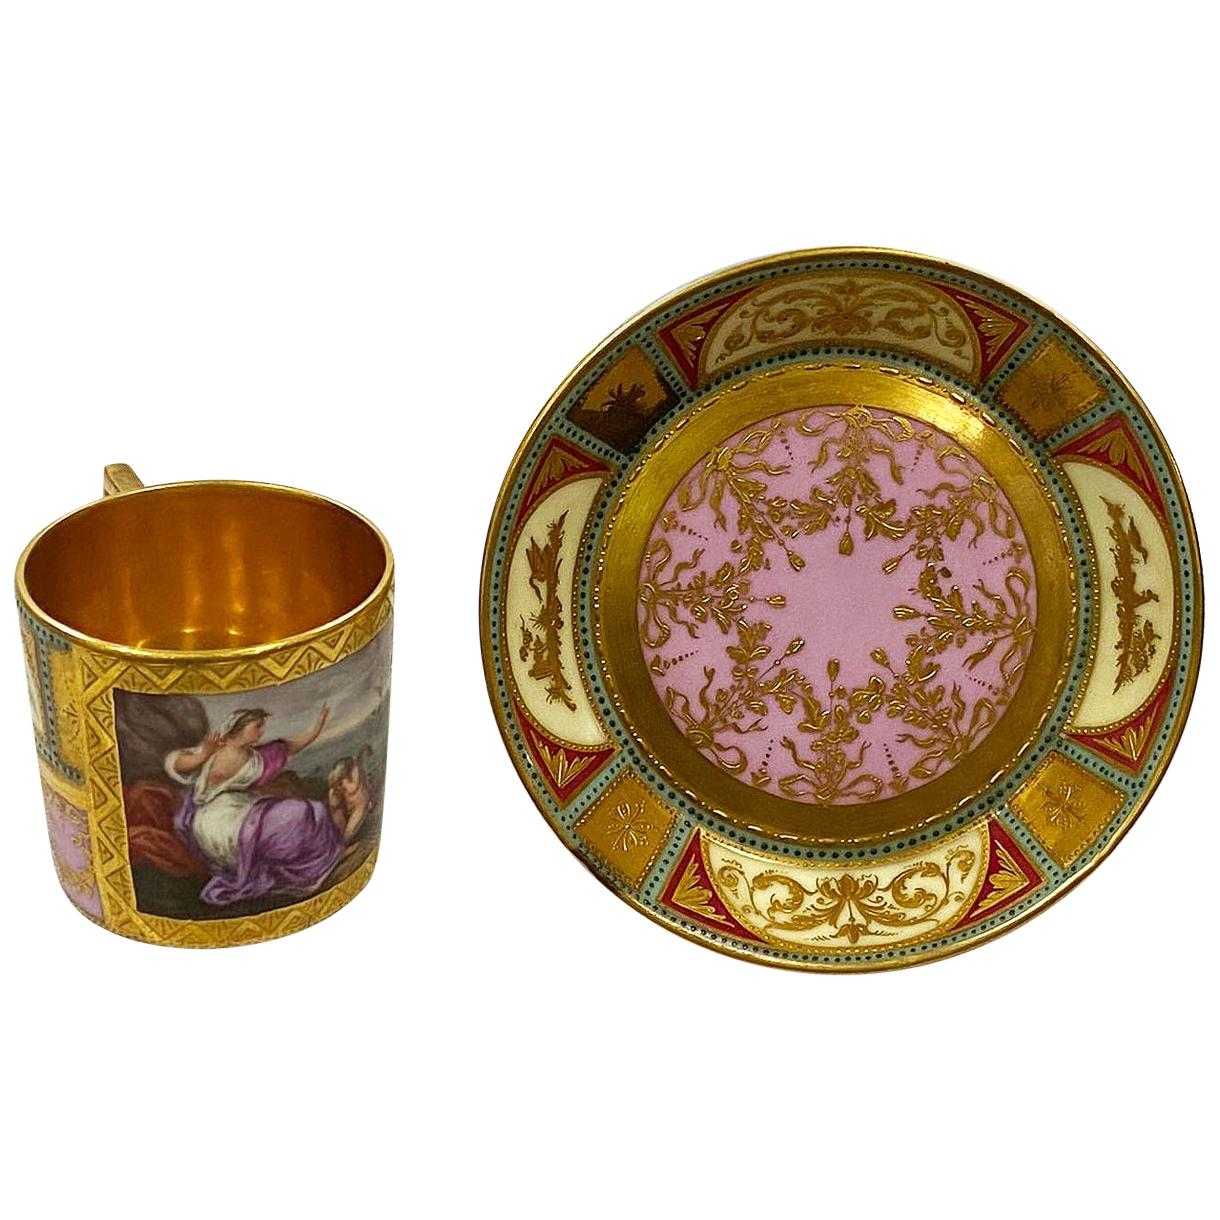 19th Century Vienna Porcelain Cup and Saucer